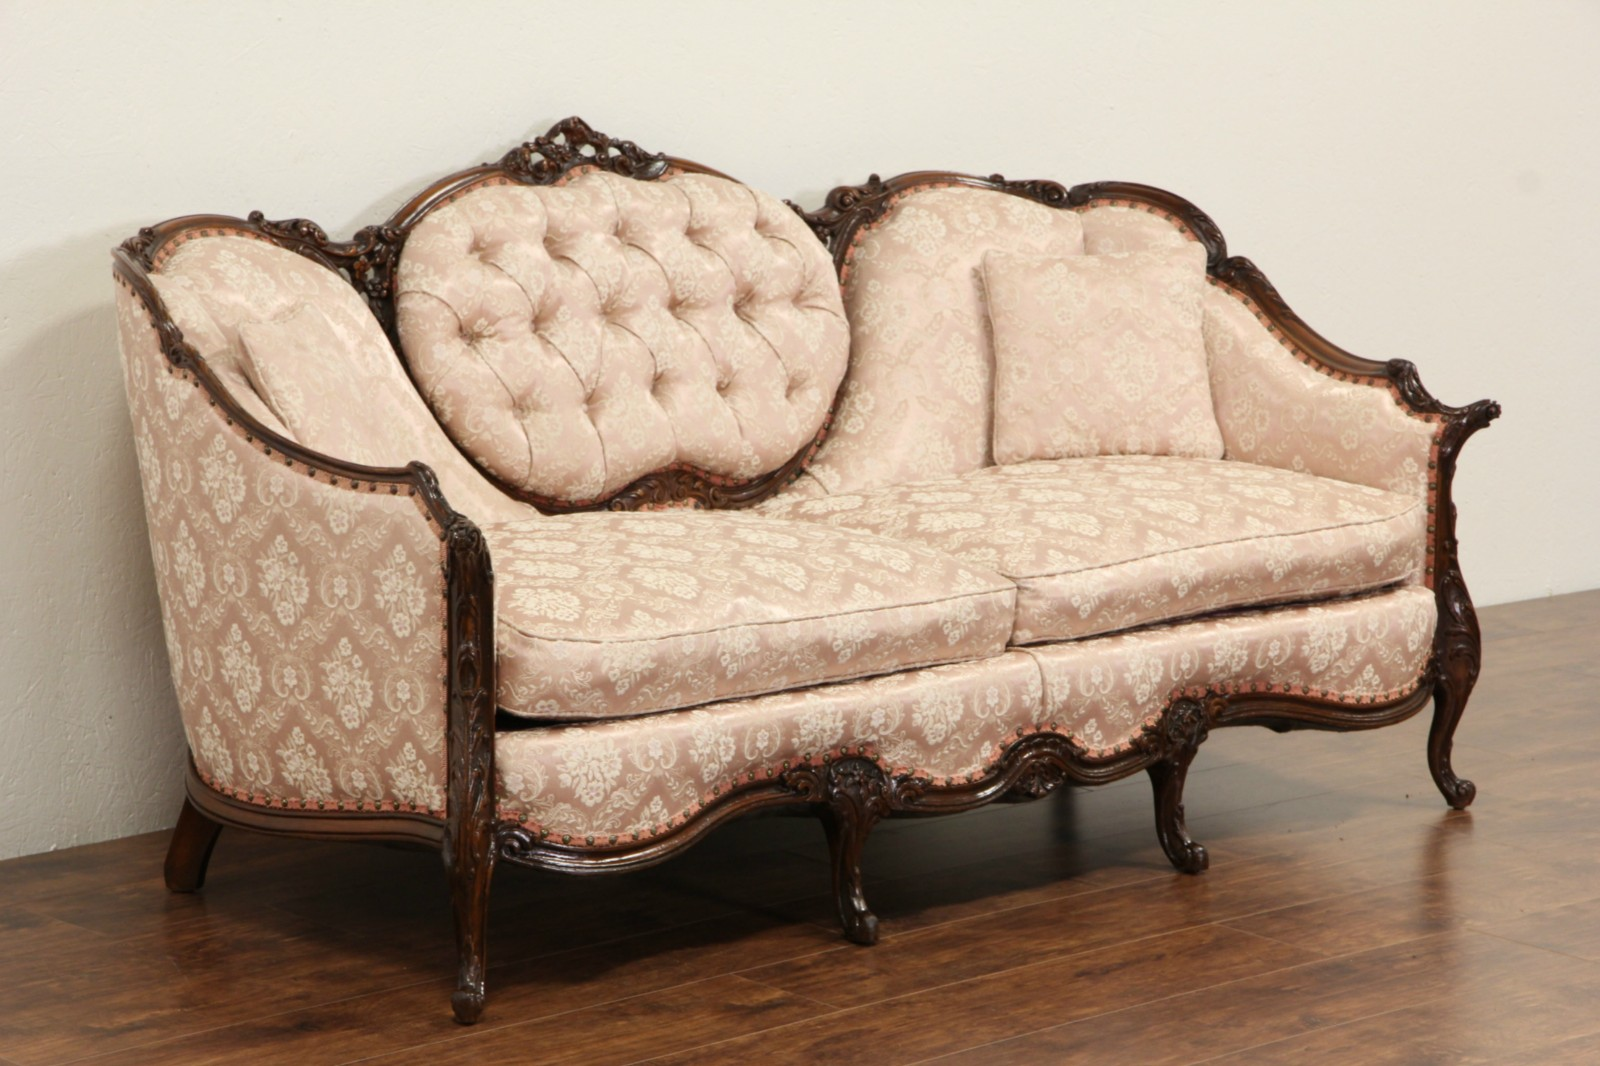 a sofa in the forties big cushion covers sold french style carved frame 1940 39s vintage